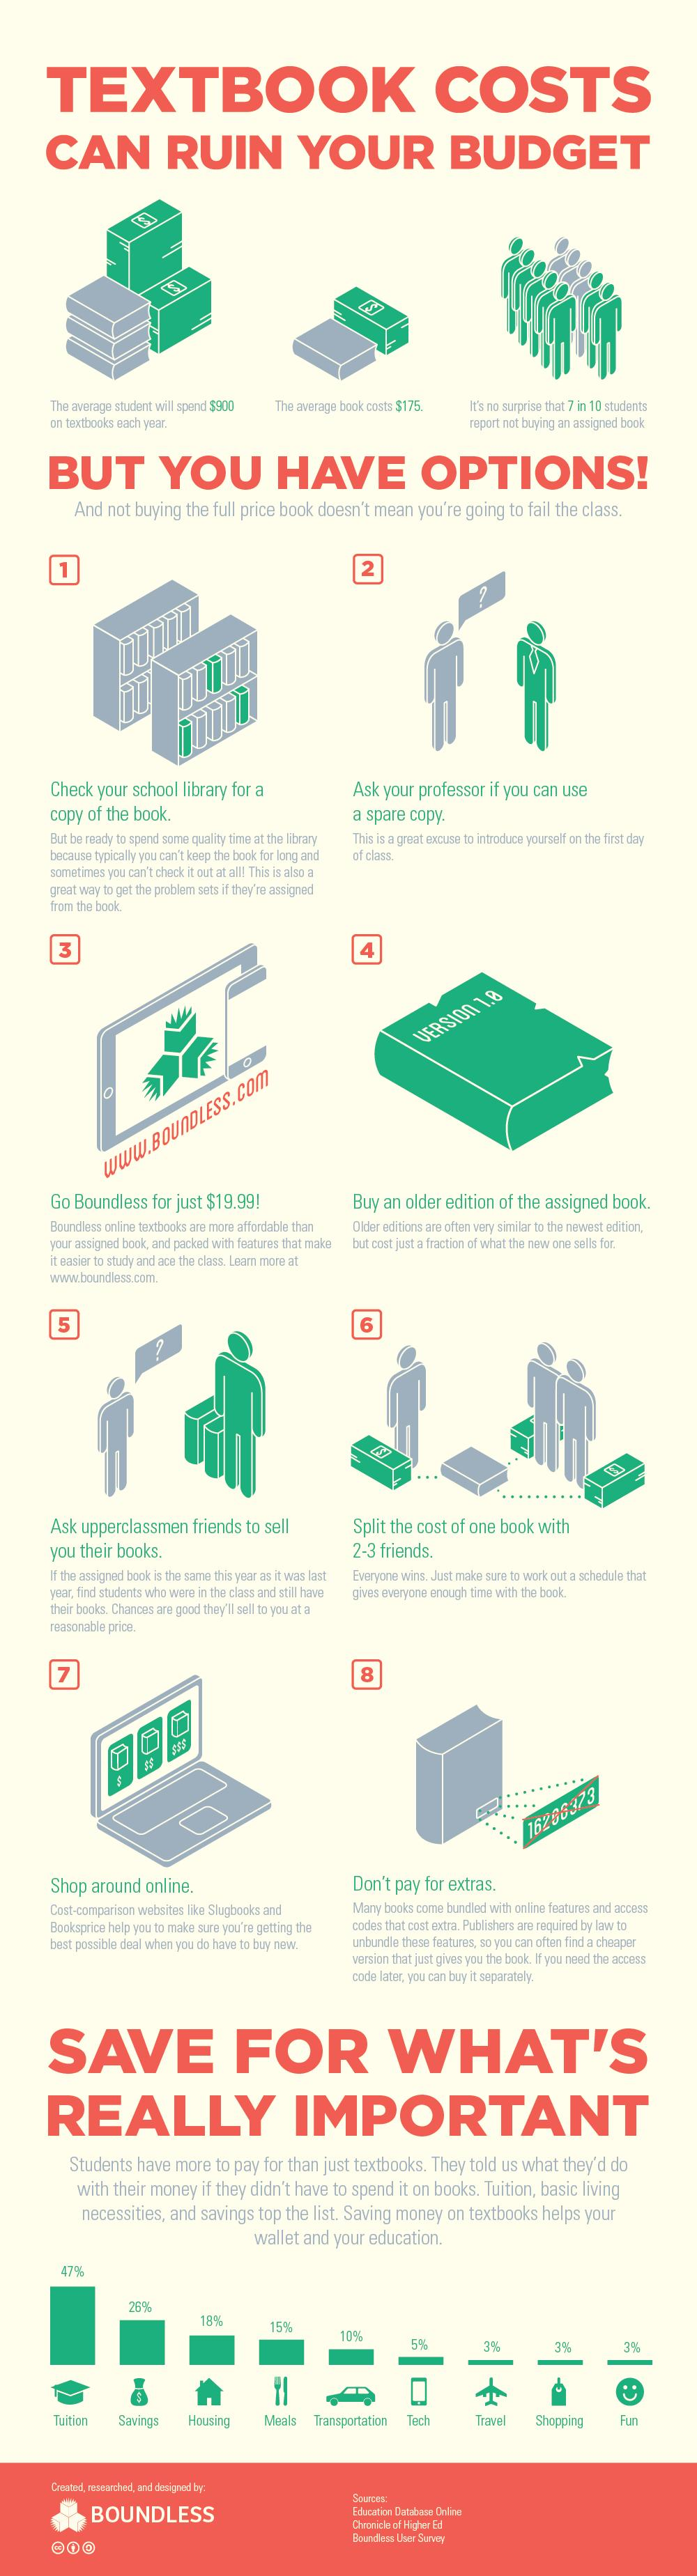 8 Ways To Save Money On Textbooks